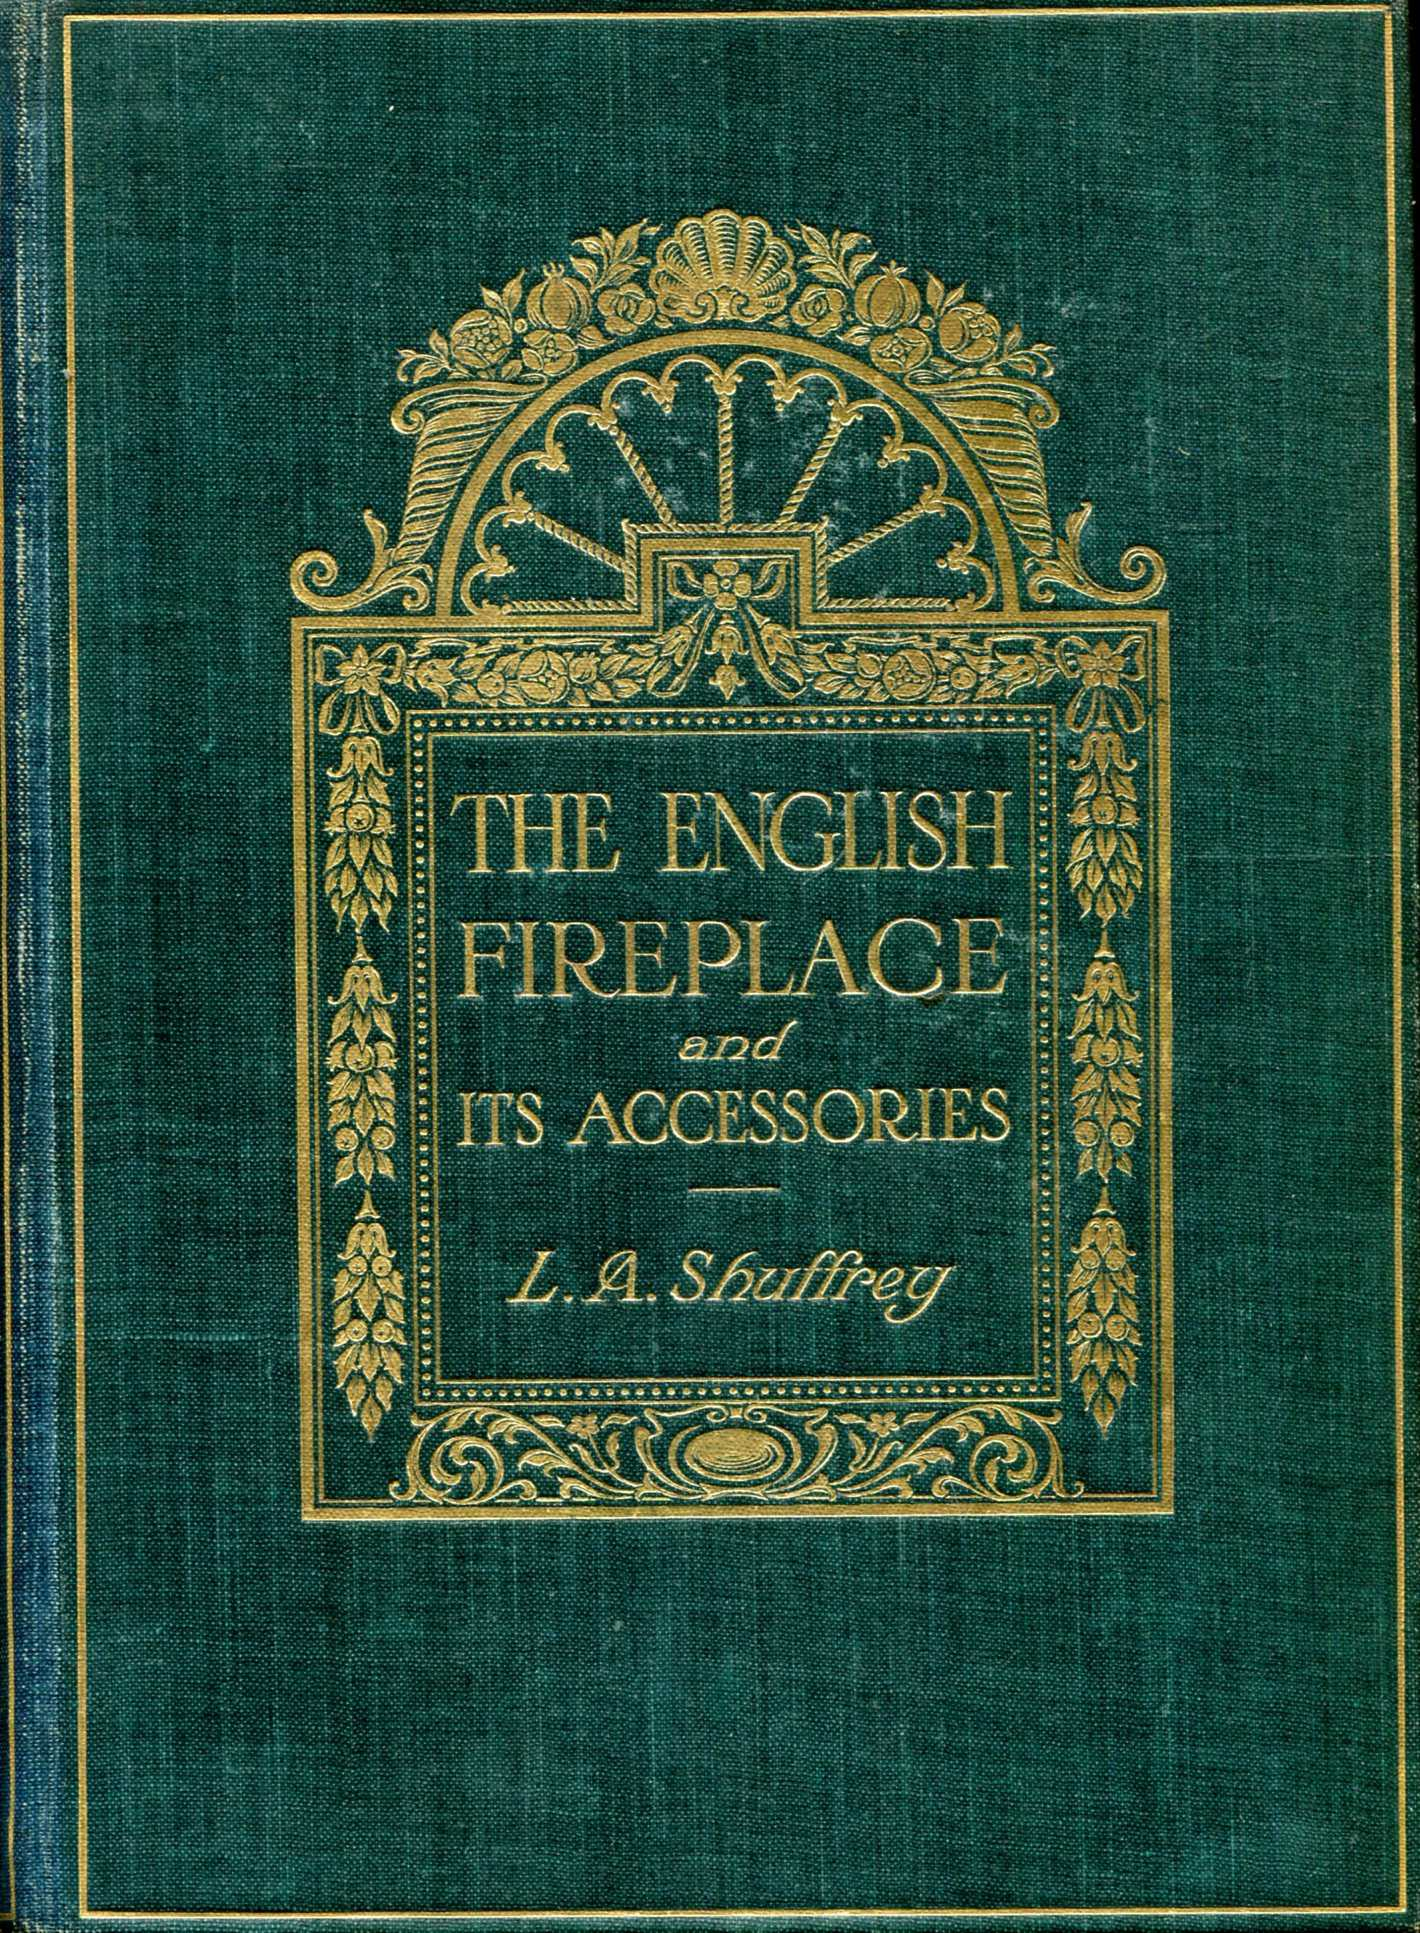 Image for The English Fireplace : a history of the development of the chimney, chimney-piece and firegrate with their accessories, from the earliest times to the beginning of the xixth century